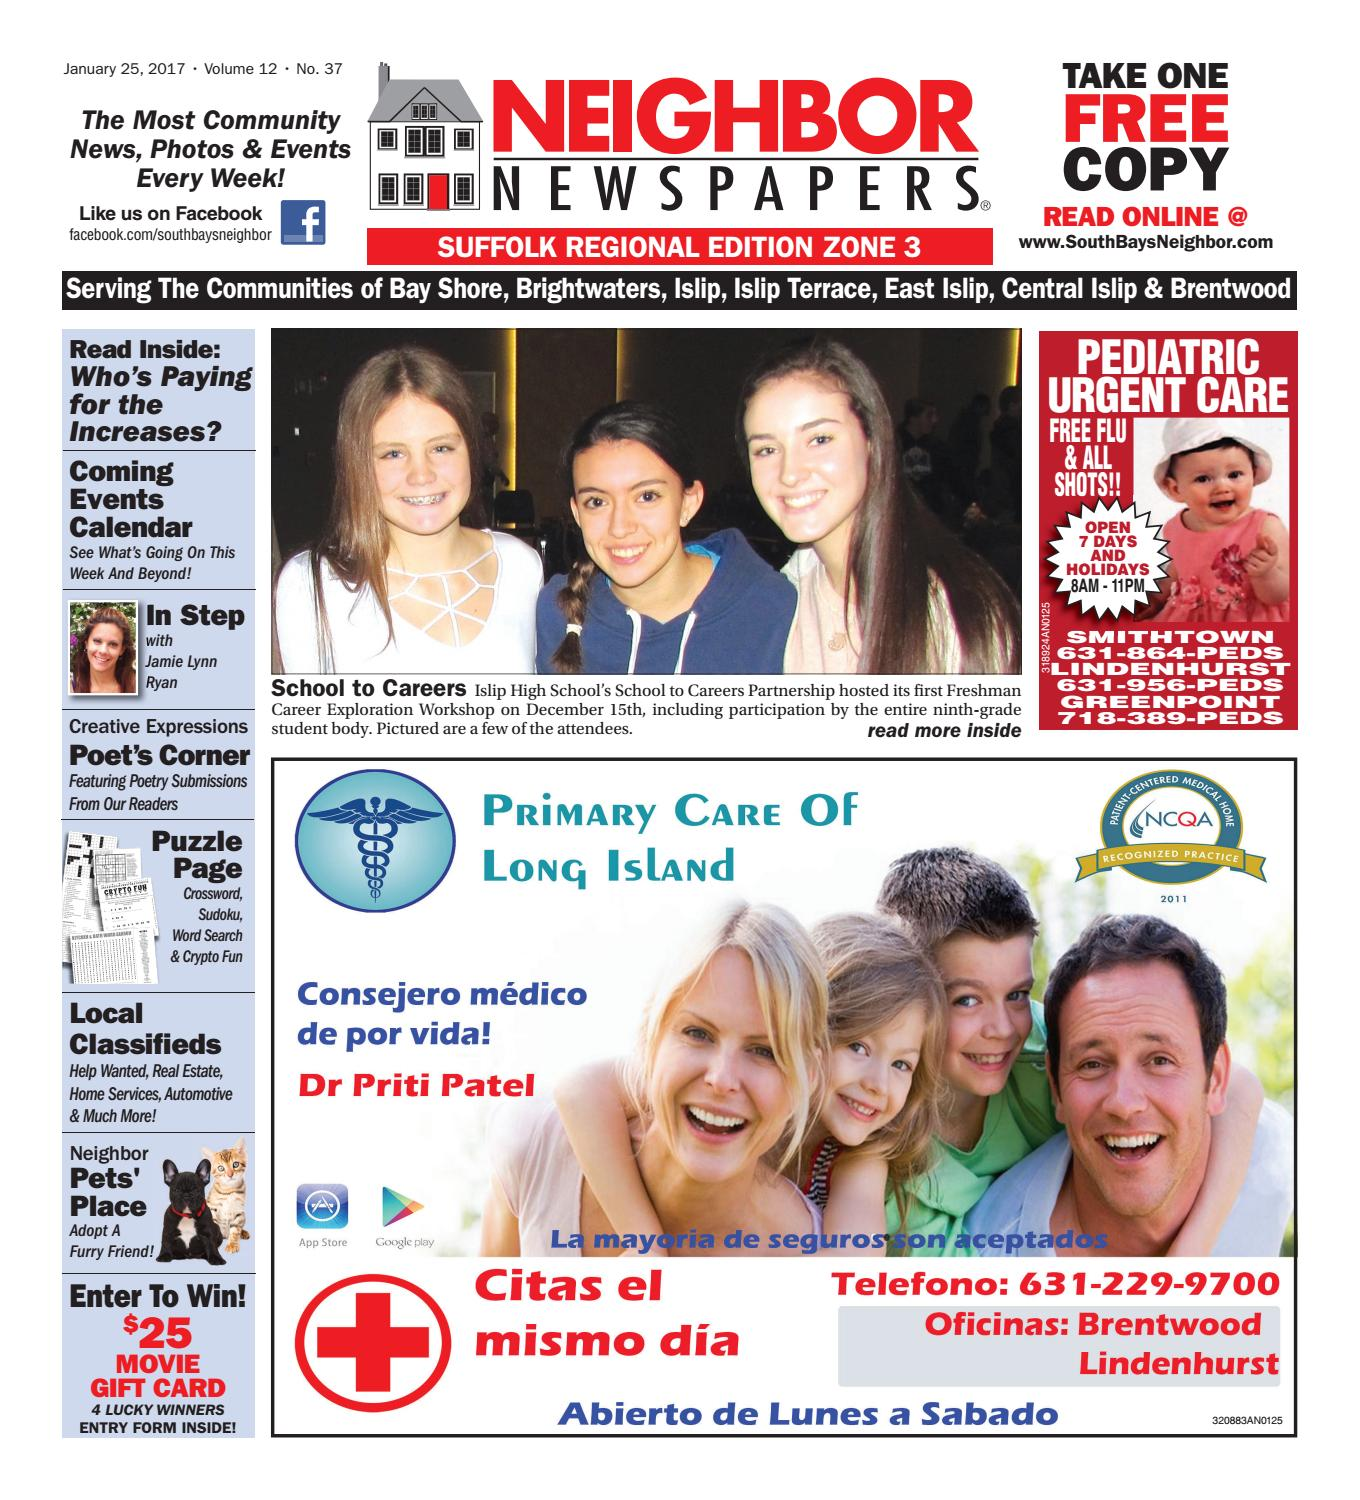 January 25 2017 suffolk zone 3 by south bays neighbor newspapers january 25 2017 suffolk zone 3 by south bays neighbor newspapers issuu fandeluxe Choice Image